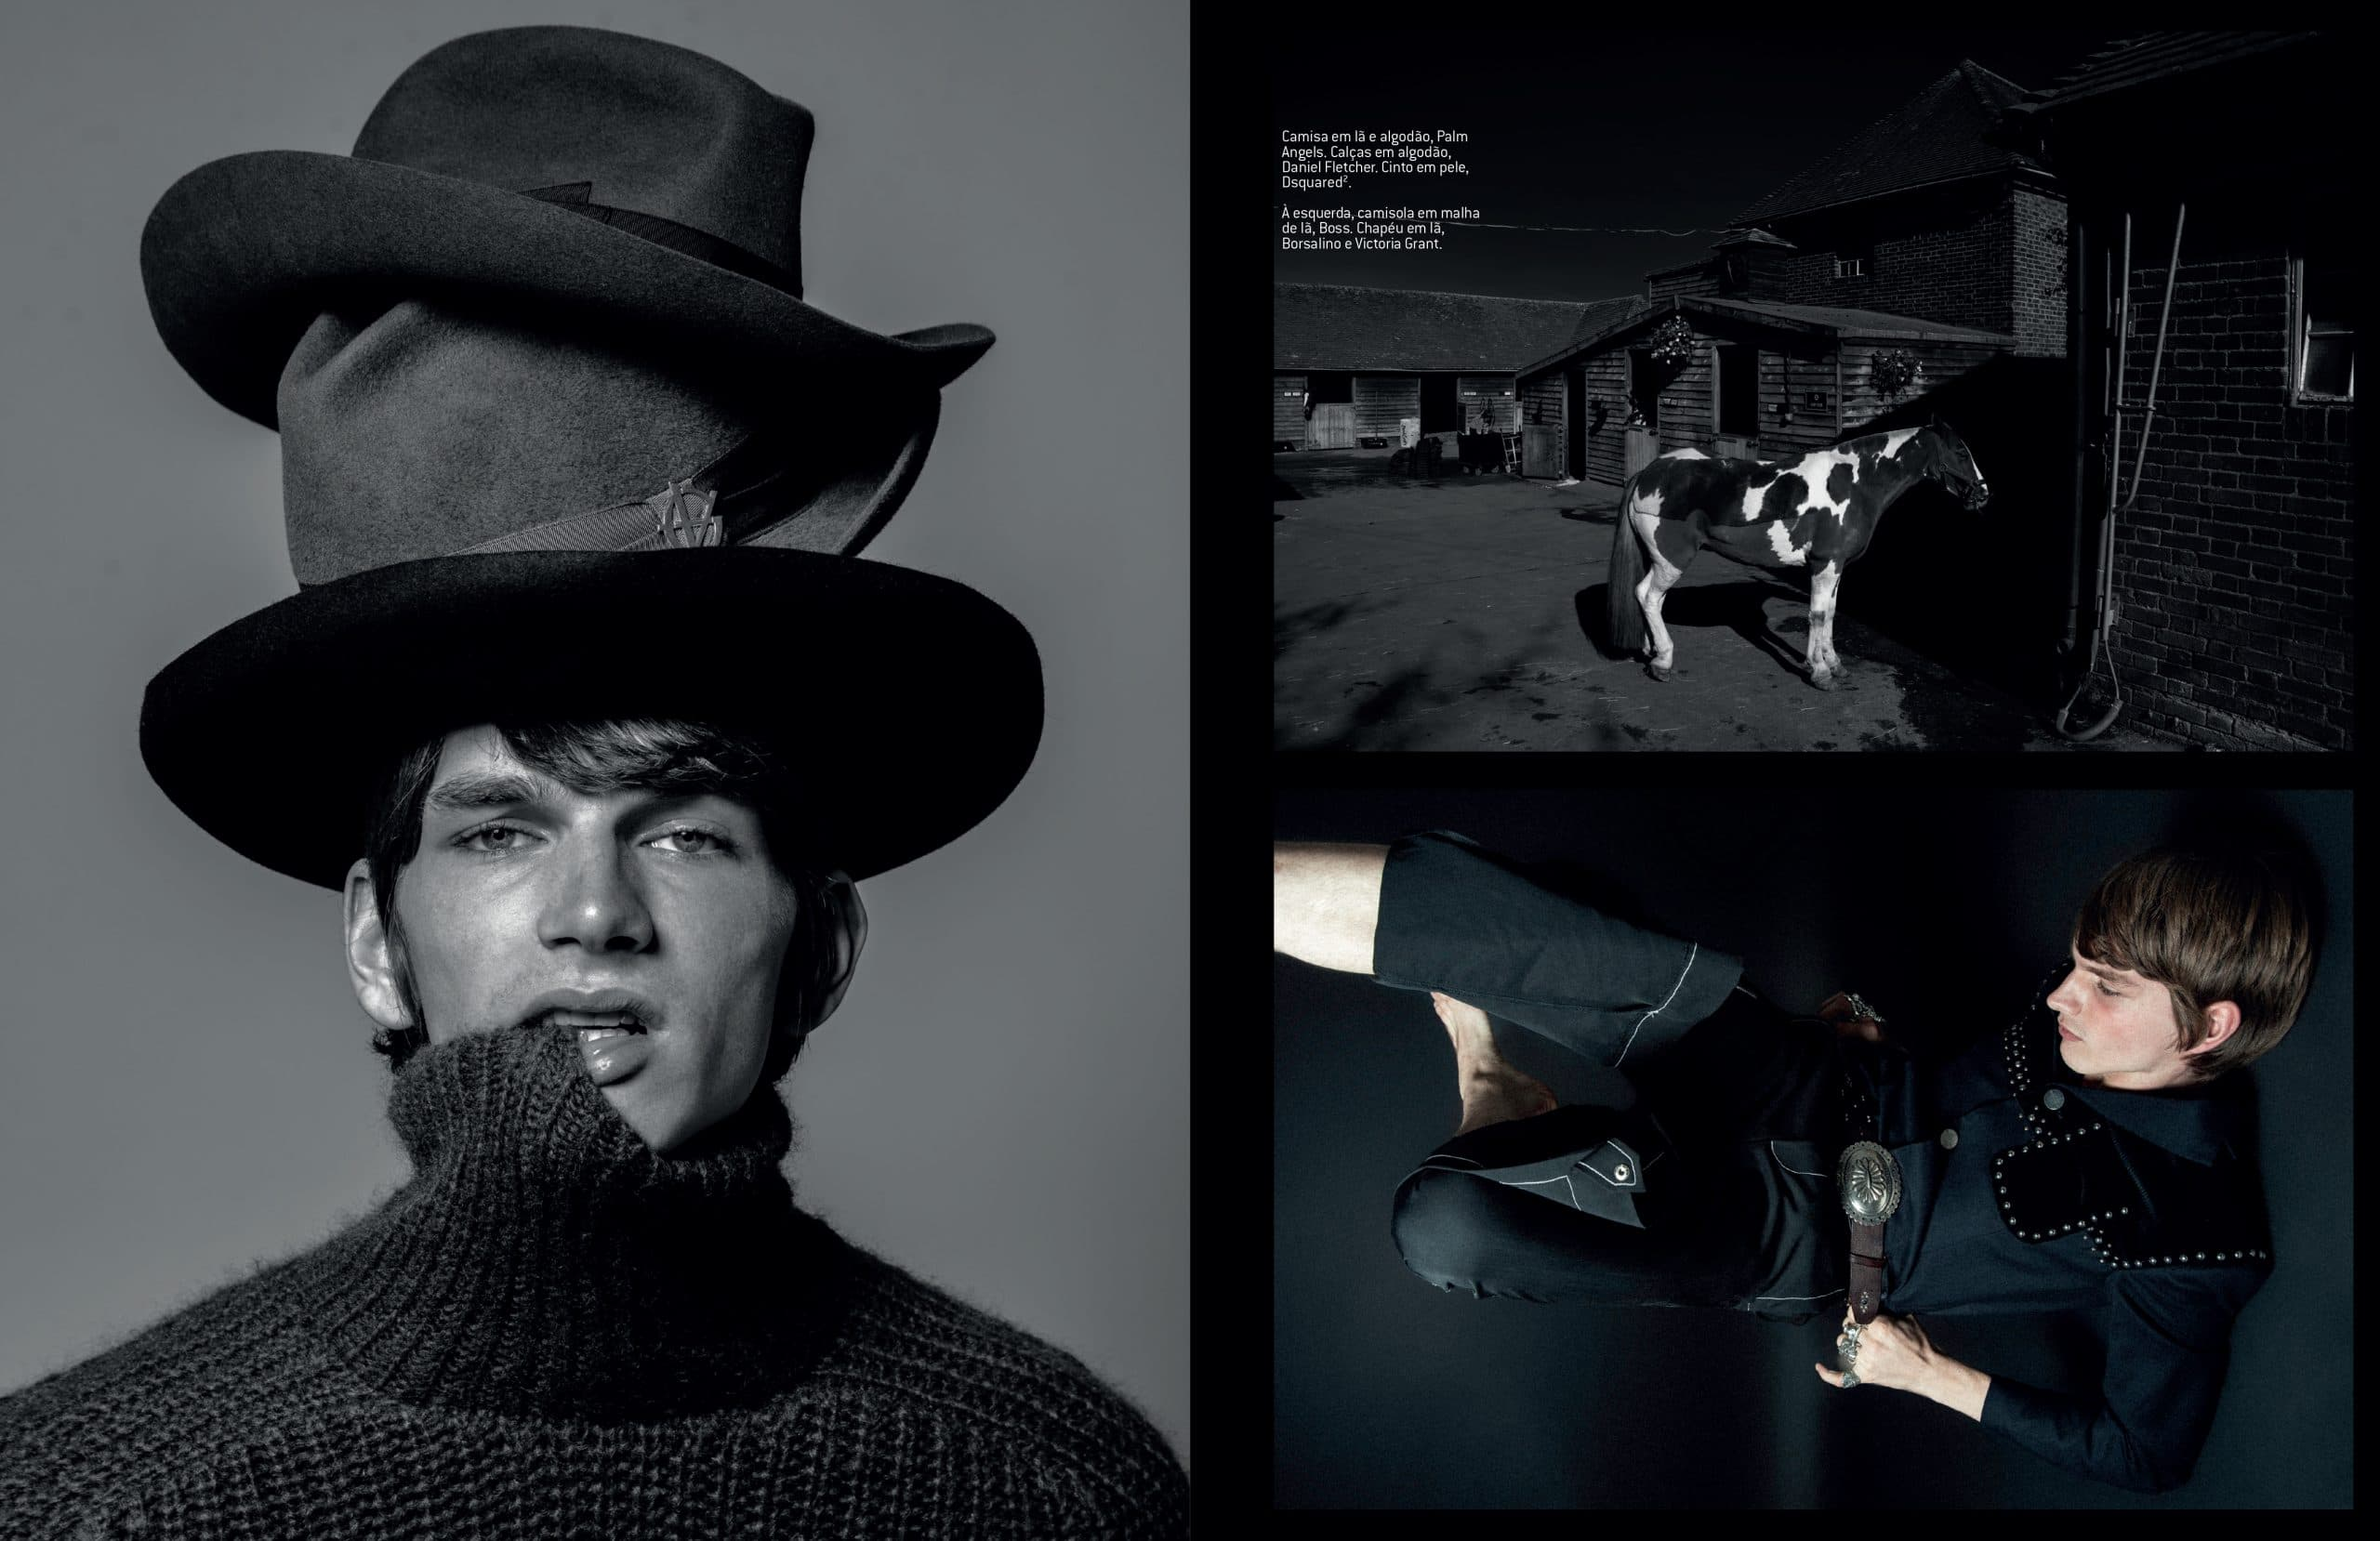 Gq Portugal Are Cowboys Real The Great Frog